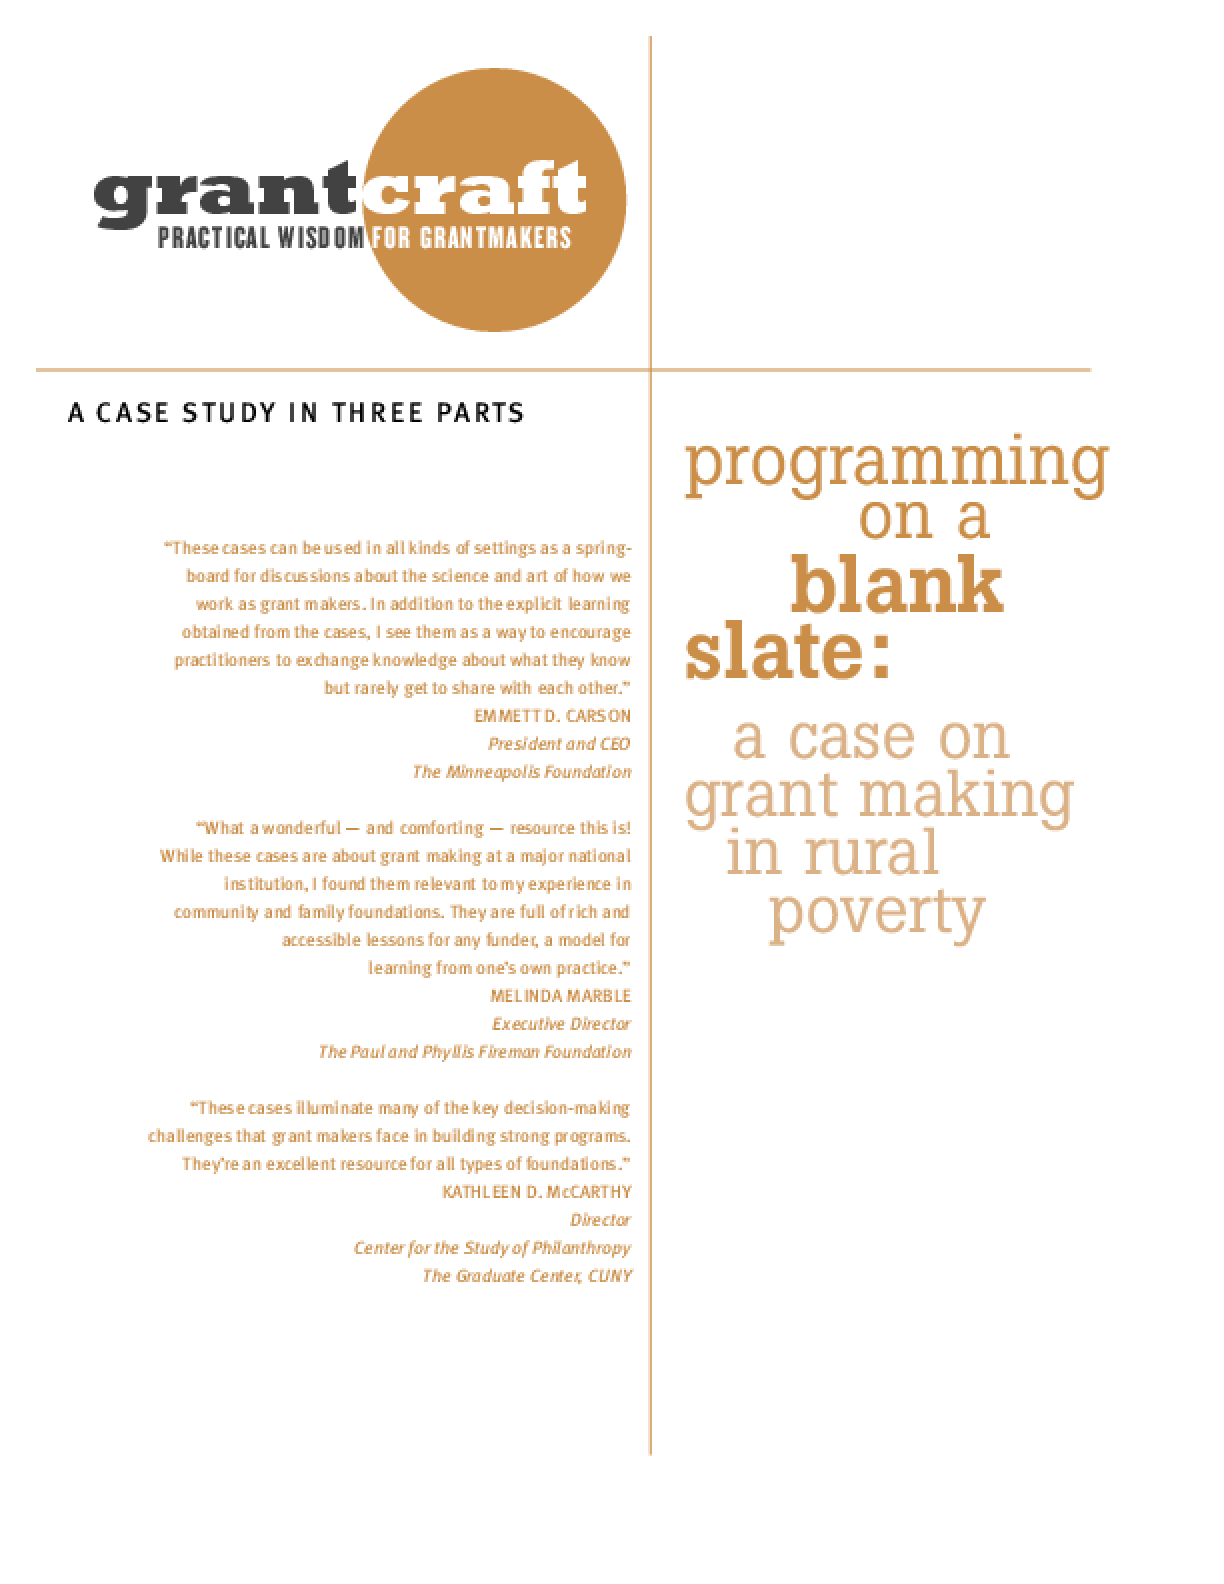 Programming On a Blank Slate: A Case On Grantmaking in Rural Poverty